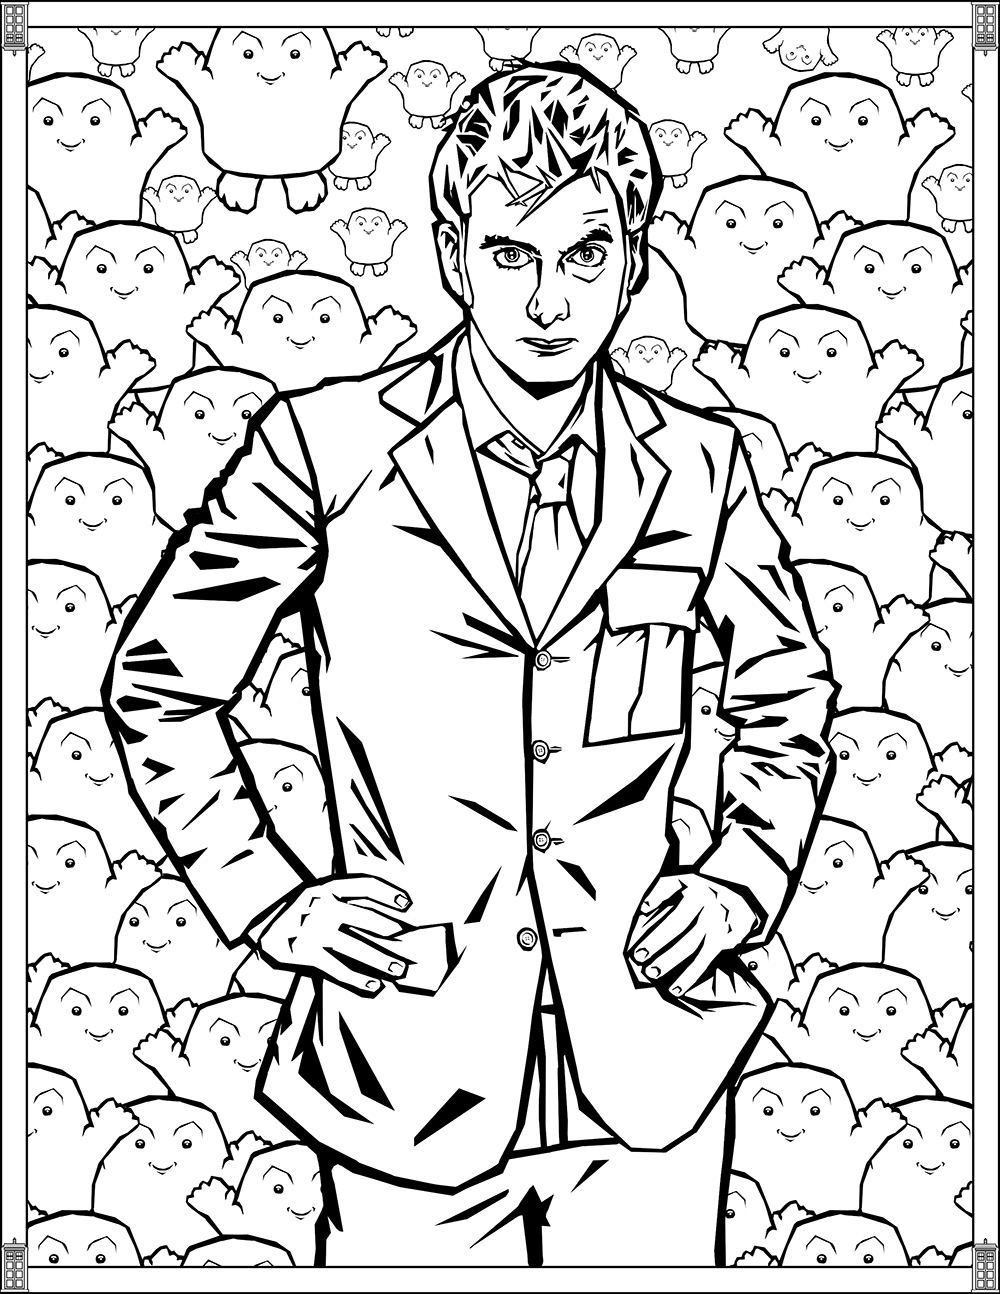 doctor who coloring pages david tennant Doctor Who Pages Tenth Doctor   TV shows Adult Coloring Pages doctor who coloring pages david tennant